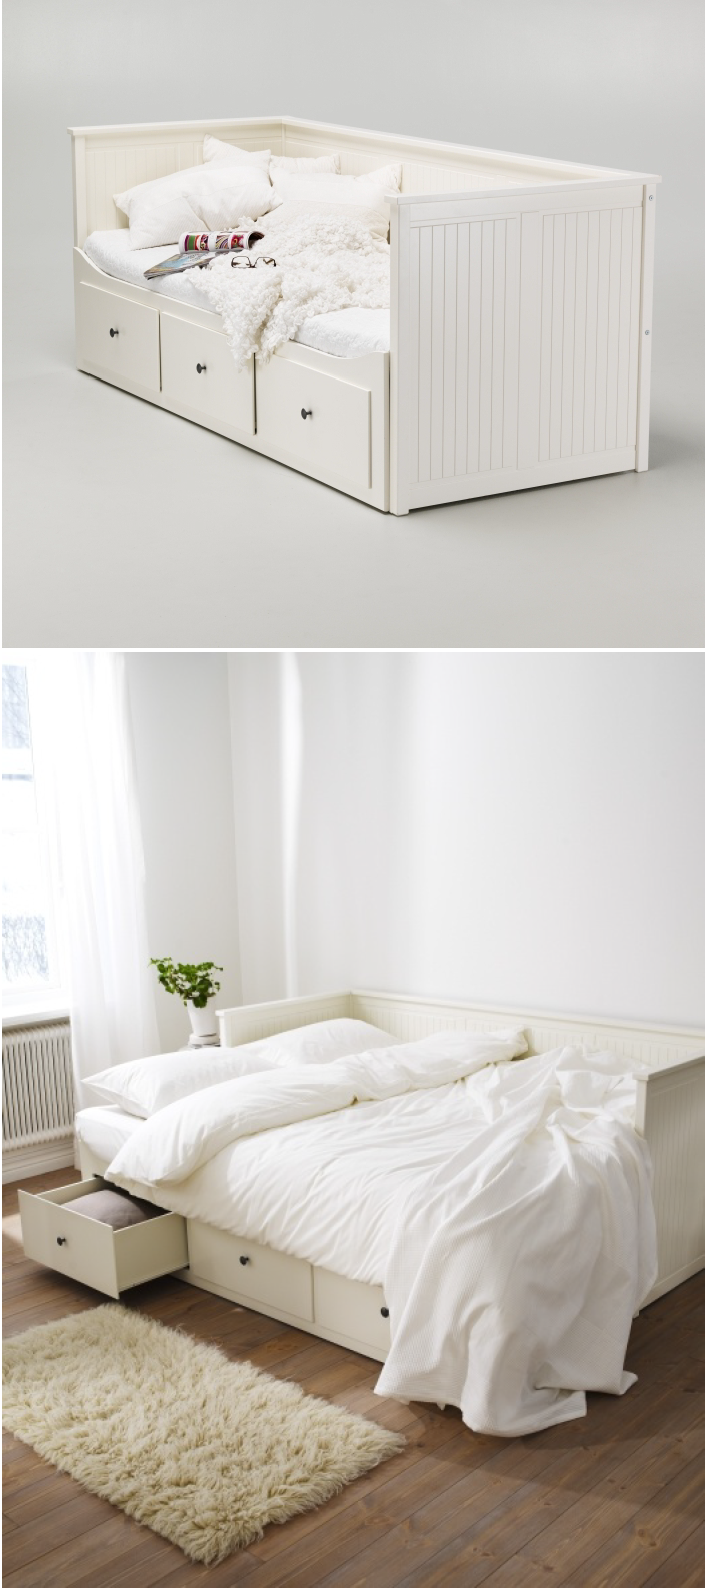 Daybed with pop up trundle ikea create a welcoming bedroom away from home for guests with the hemnes